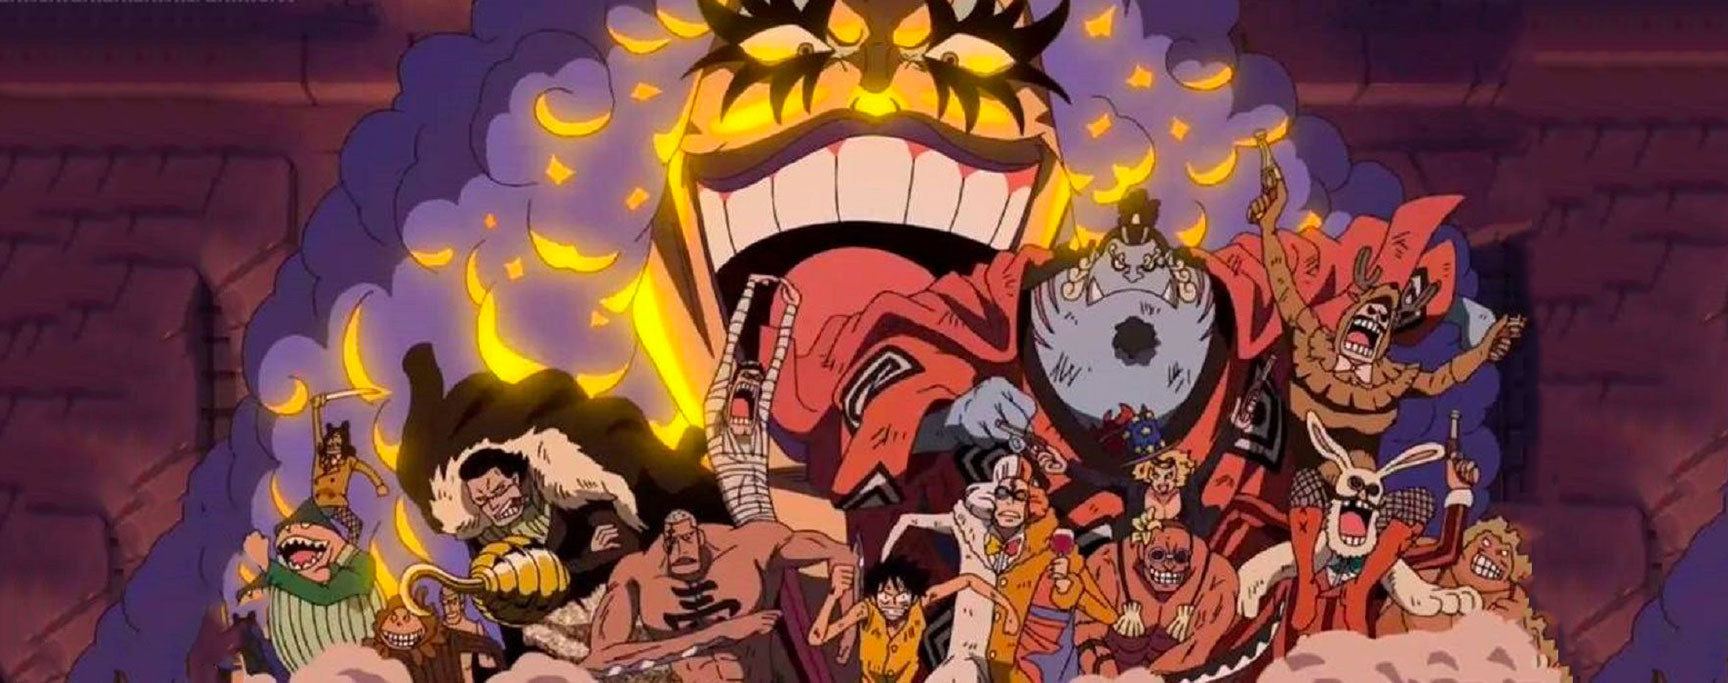 Arc Impel Down One Piece